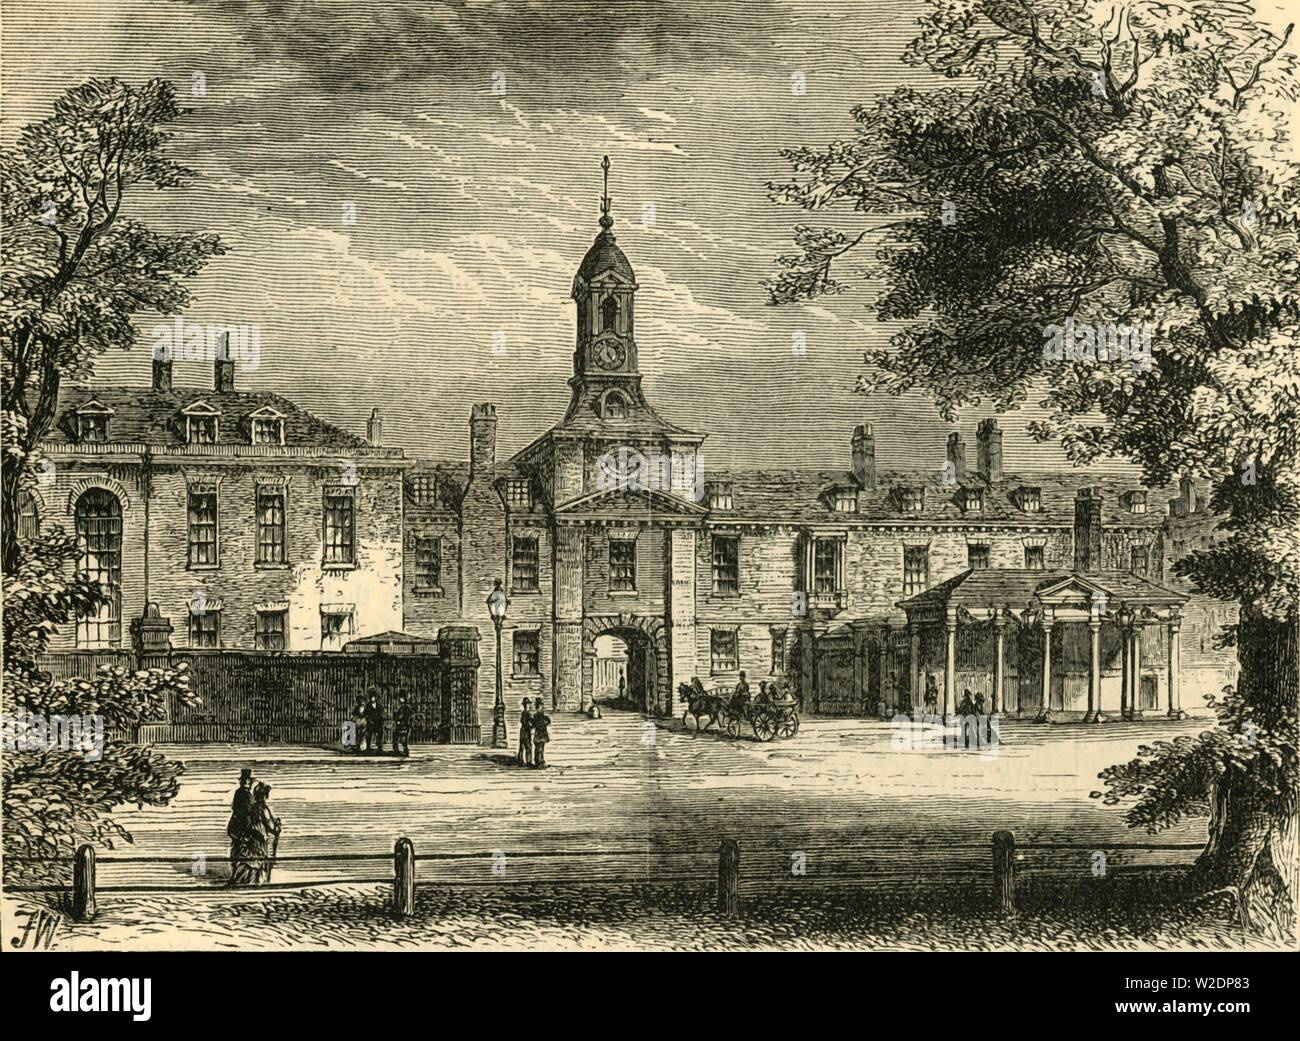 """'West Front of Kensington Palace', c1876.  Kensington Palace, residence of the British Royal Family since 17th century. Originally a Jacobean mansion bought by William and Mary who instructed Sir Christopher Wren to expand it in 1689. From """"Old and New London: A Narrative of Its History, Its People, and Its Places. The Western and Northern Studies"""", by Edward Walford. [Cassell, Petter, Galpin & Co., London, Paris & New York] - Stock Image"""